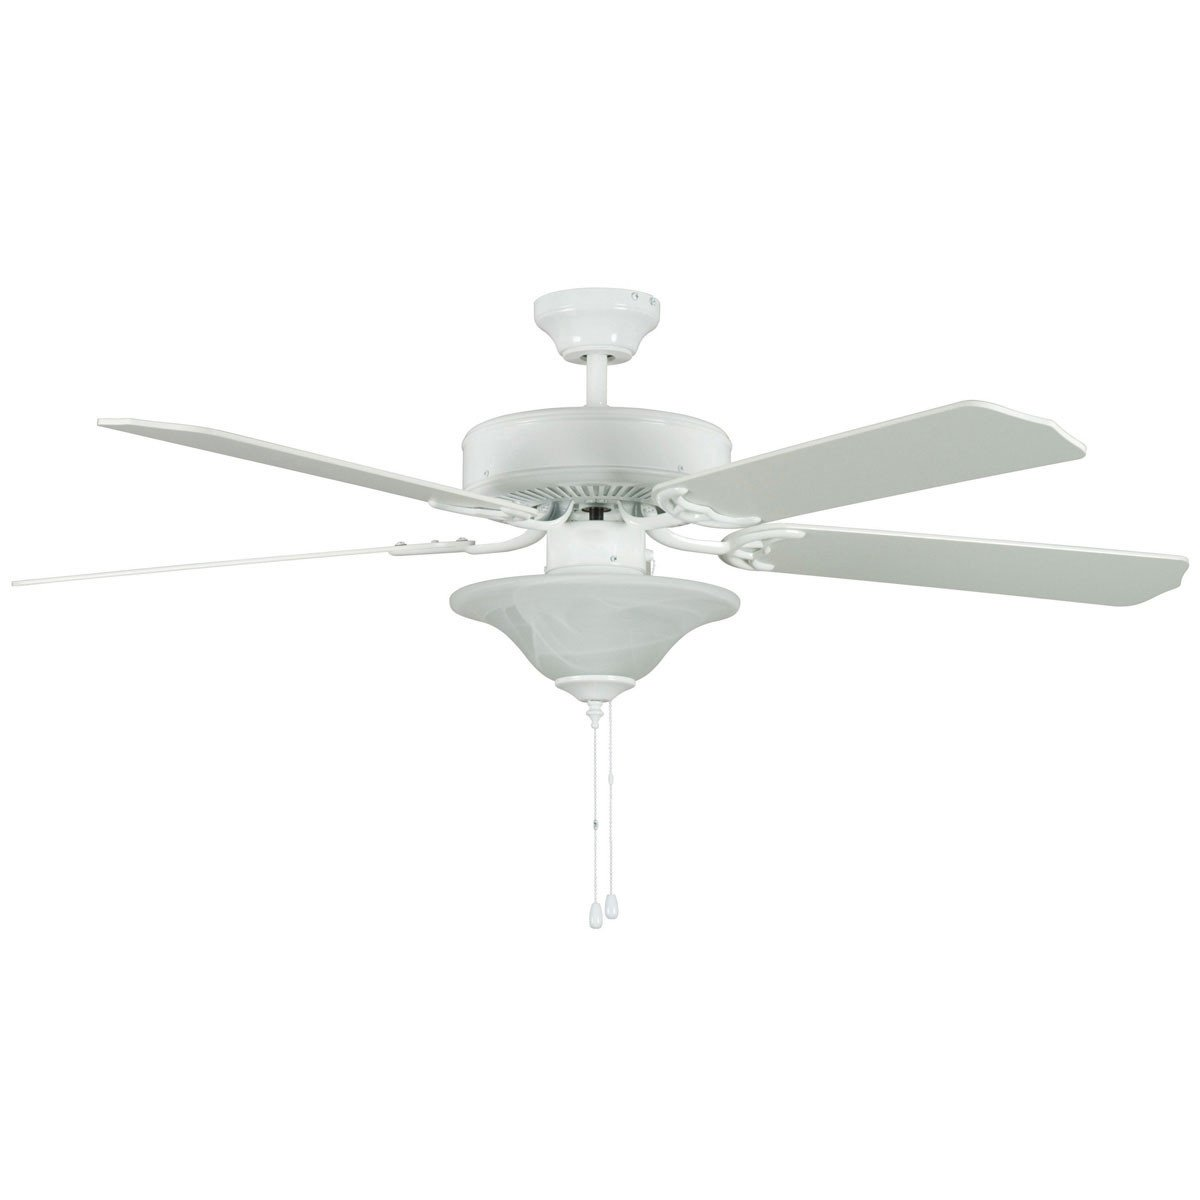 "Concord Fans 52"" Heritage Square Energy Saver White Ceiling Fan with Light Kit"